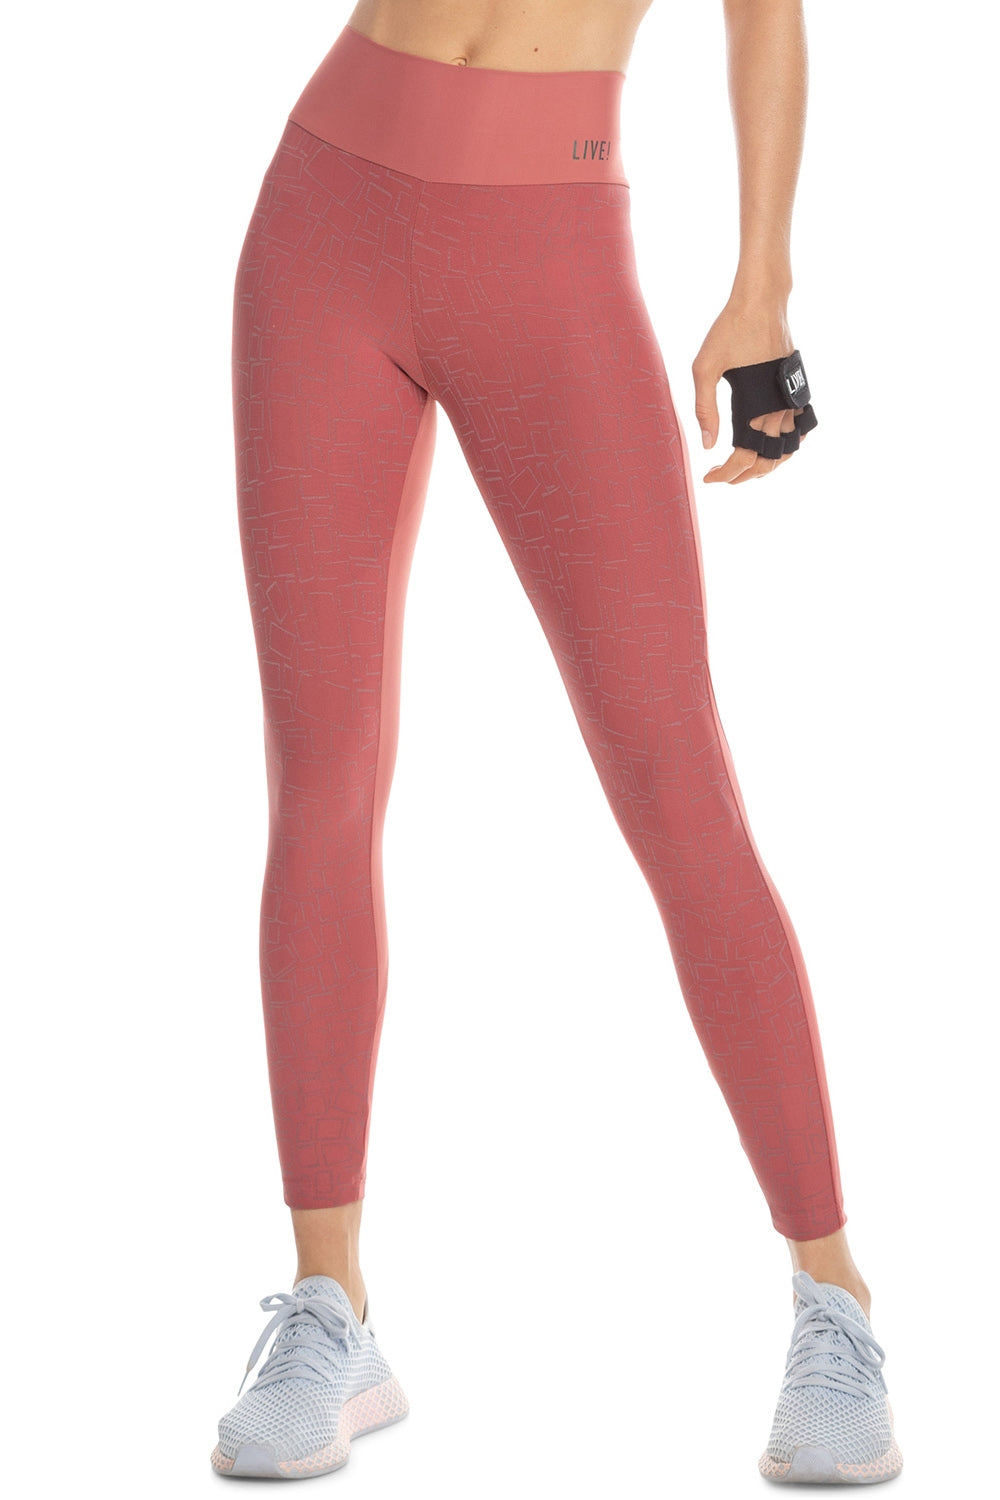 Geometric Feature Legging